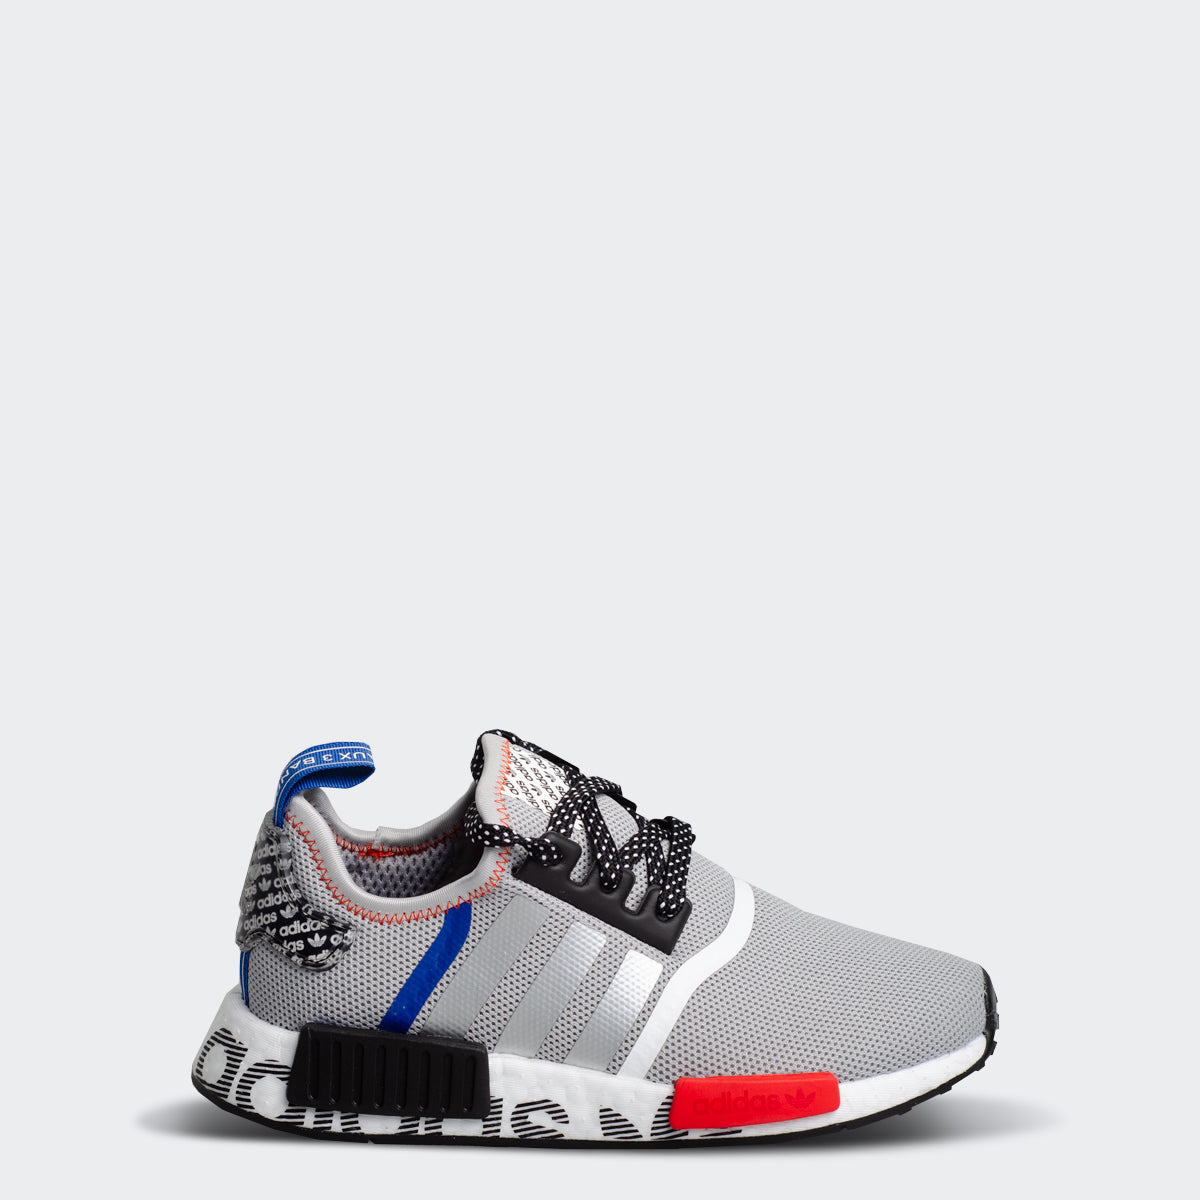 Adidas Nmd R1 Shoes Grey D96689 Chicago City Sports